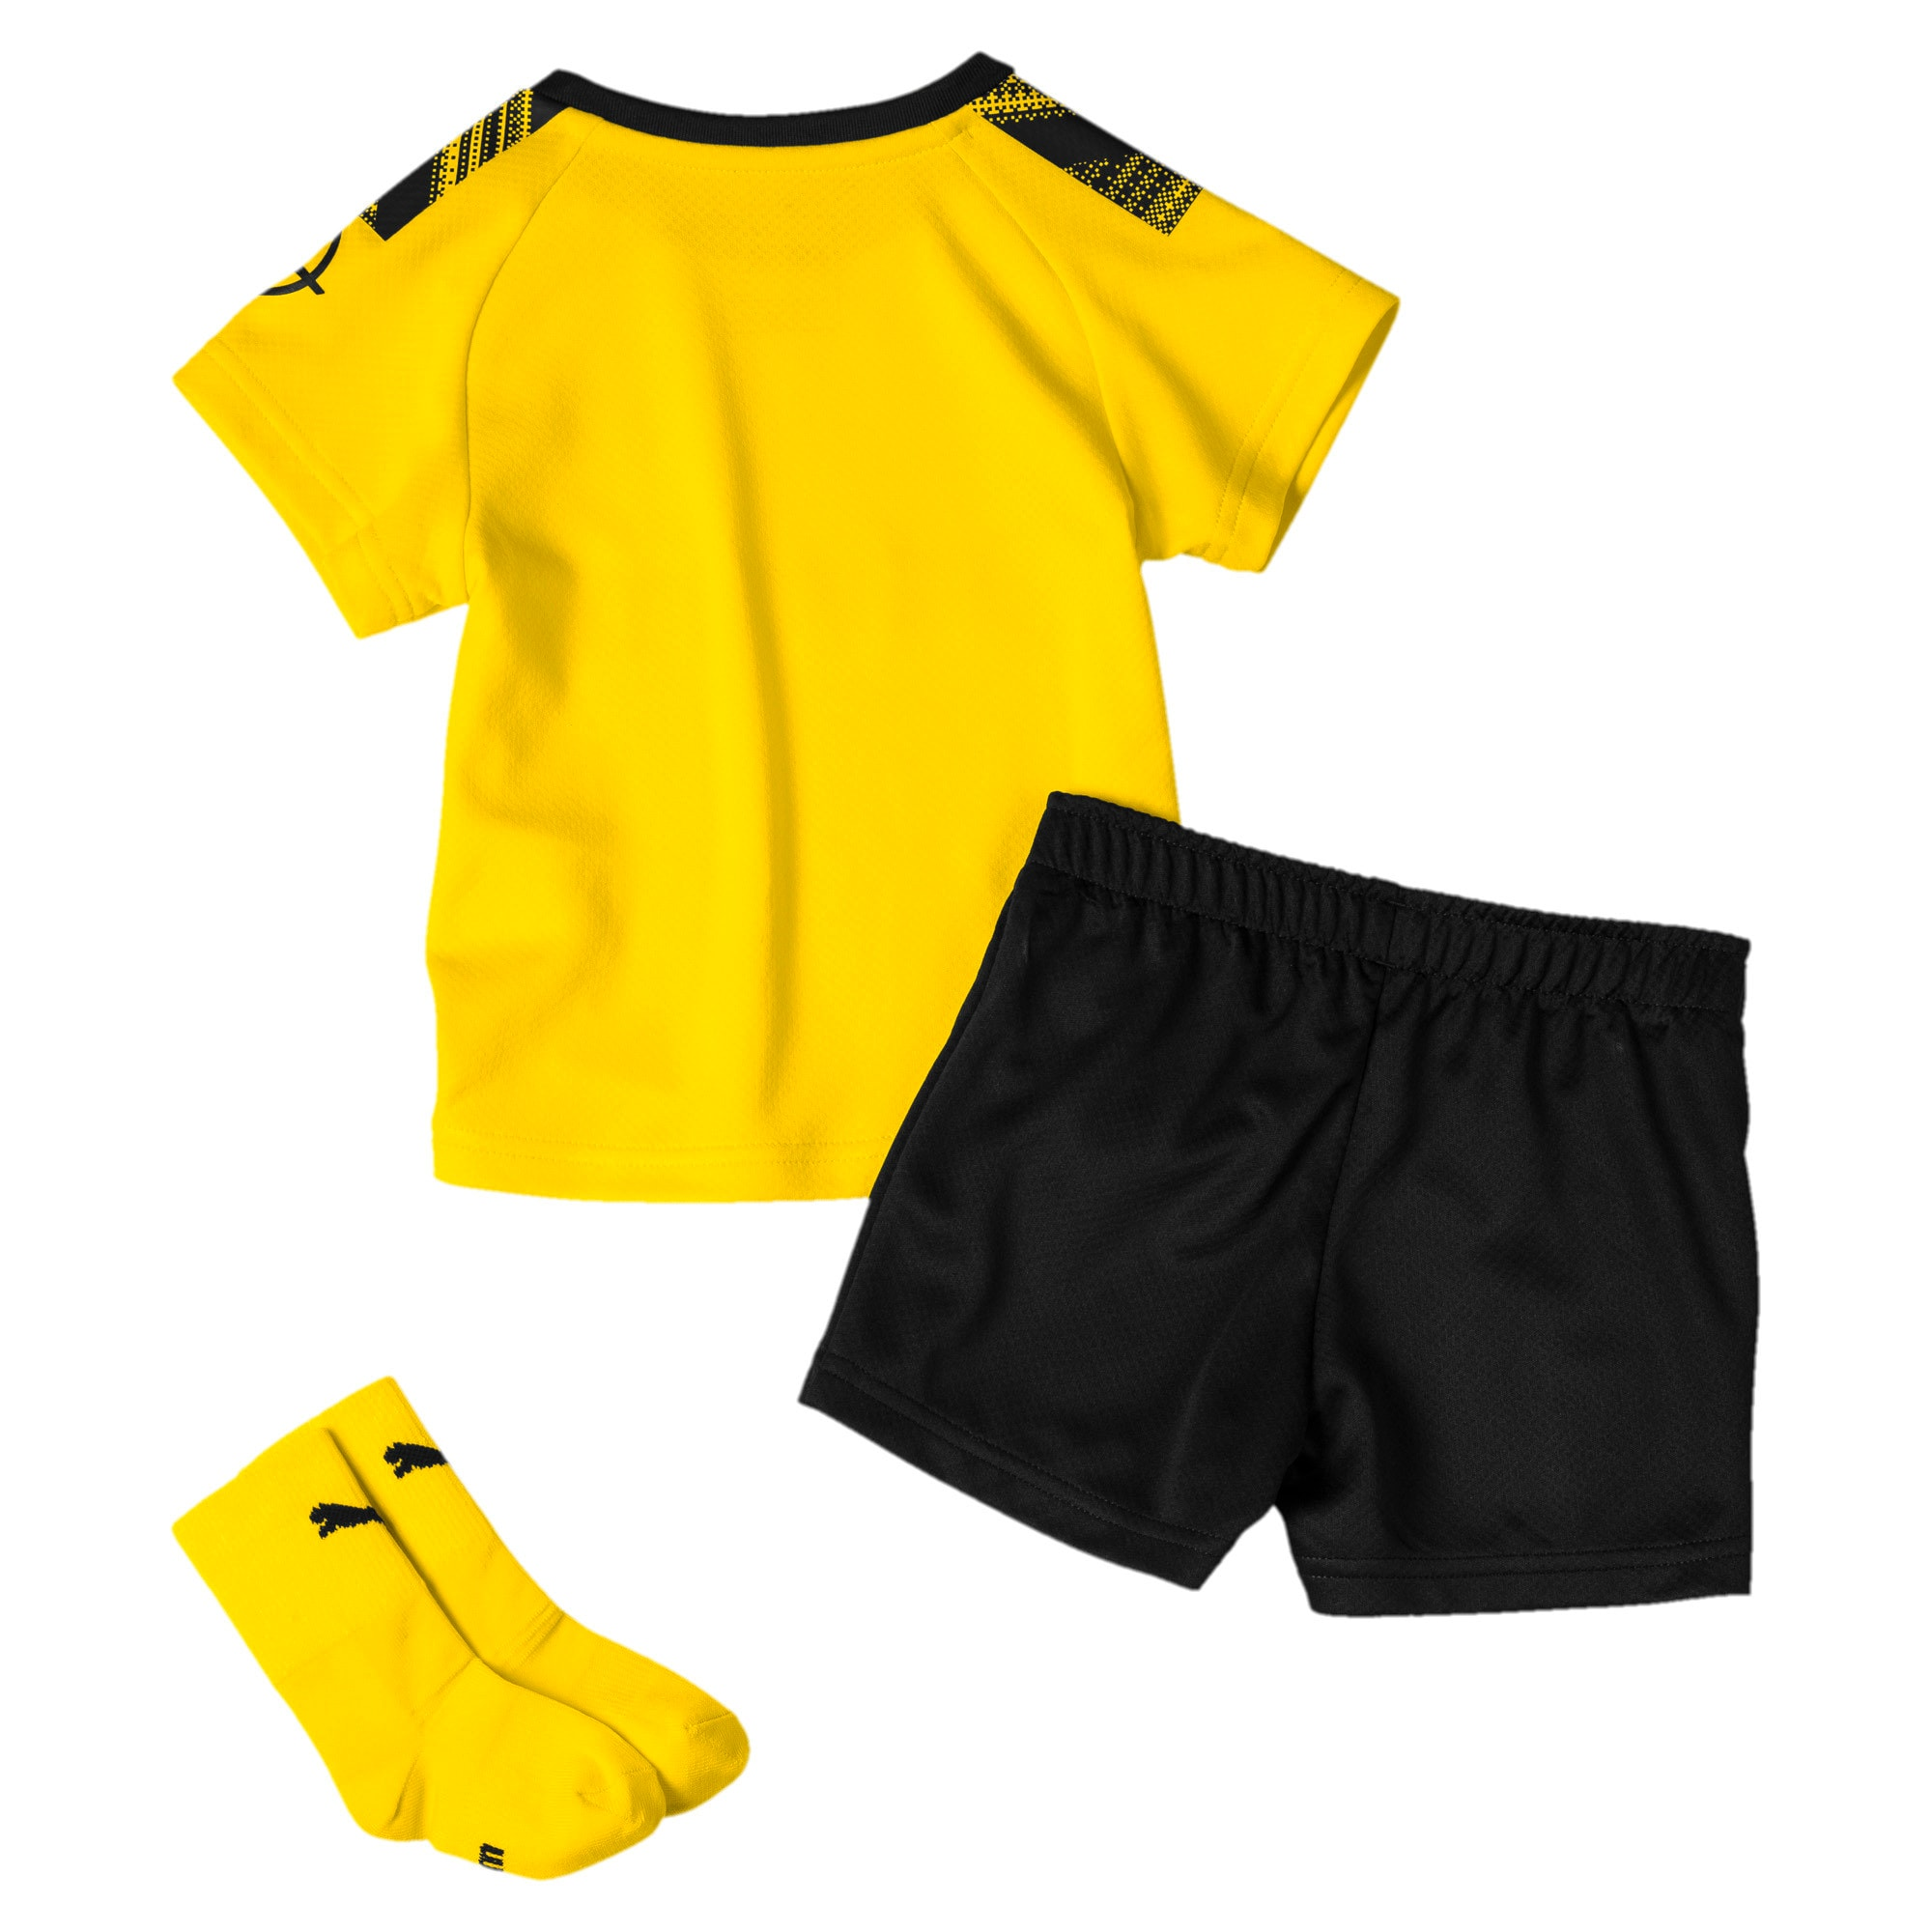 Thumbnail 2 of BVB mini-thuisset voor baby's, Cyber Yellow-Puma Black, medium